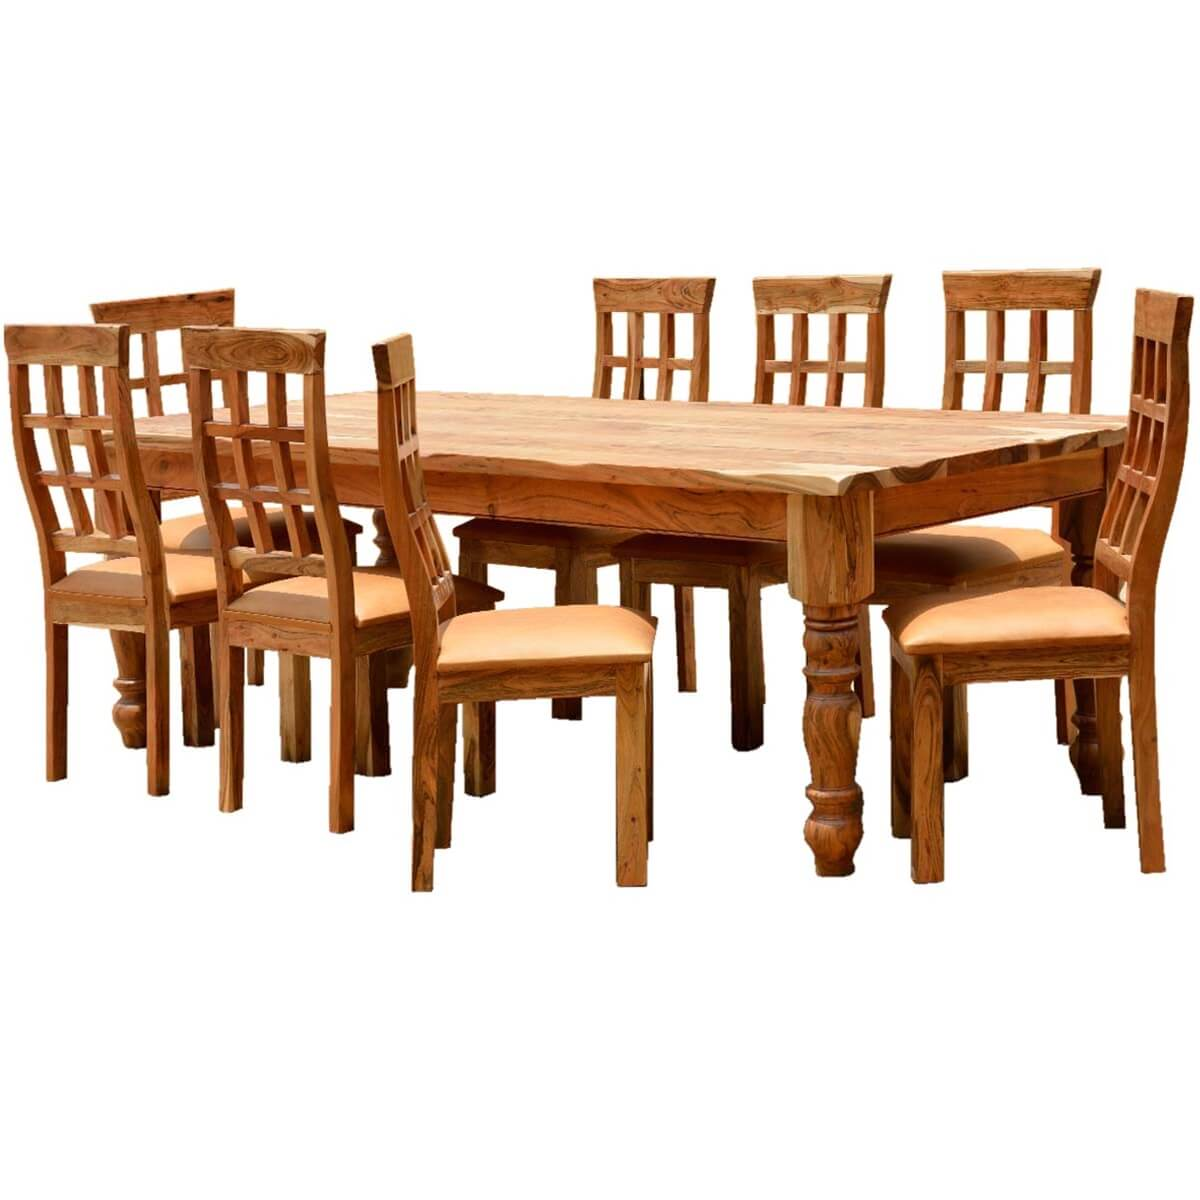 Rustic solid wood farmhouse dining 28 images solid for Farmhouse dining room table set